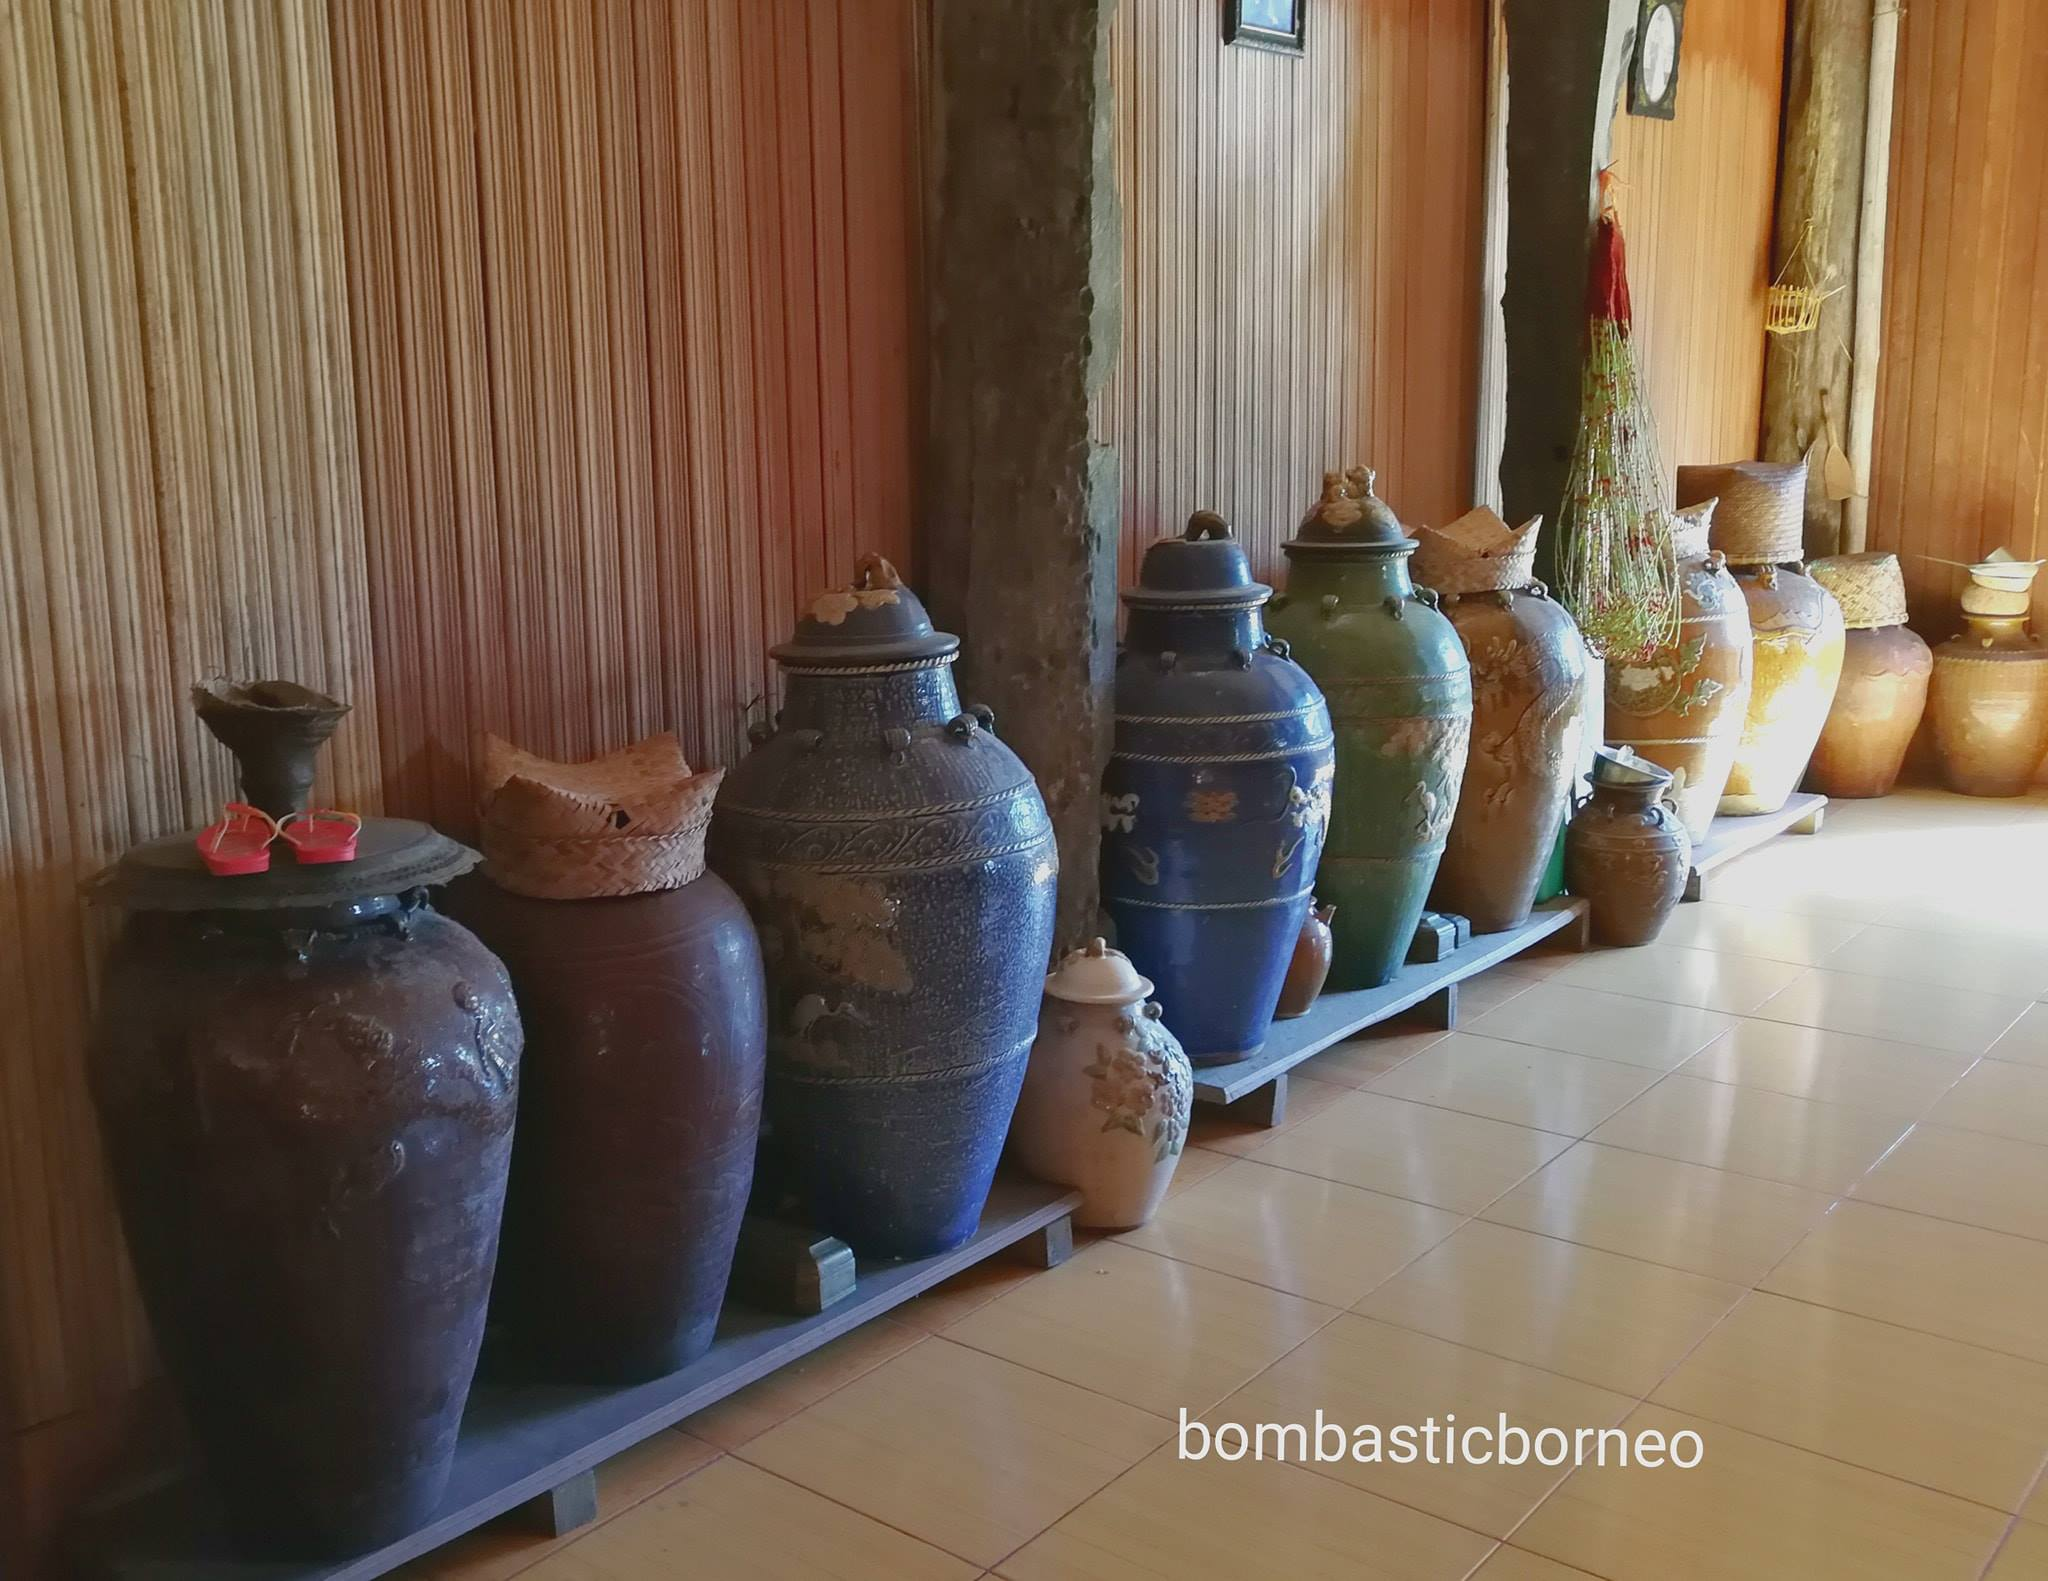 Rumah Betang Sungai Utik, traditional, village, Embaloh Hulu, authentic, Suku Dayak Iban, native, tribal, Tourism, travel guide, trans border, Borneo, 印尼西加里曼丹, 甘布安斯乌鲁, 原住民土著村庄,